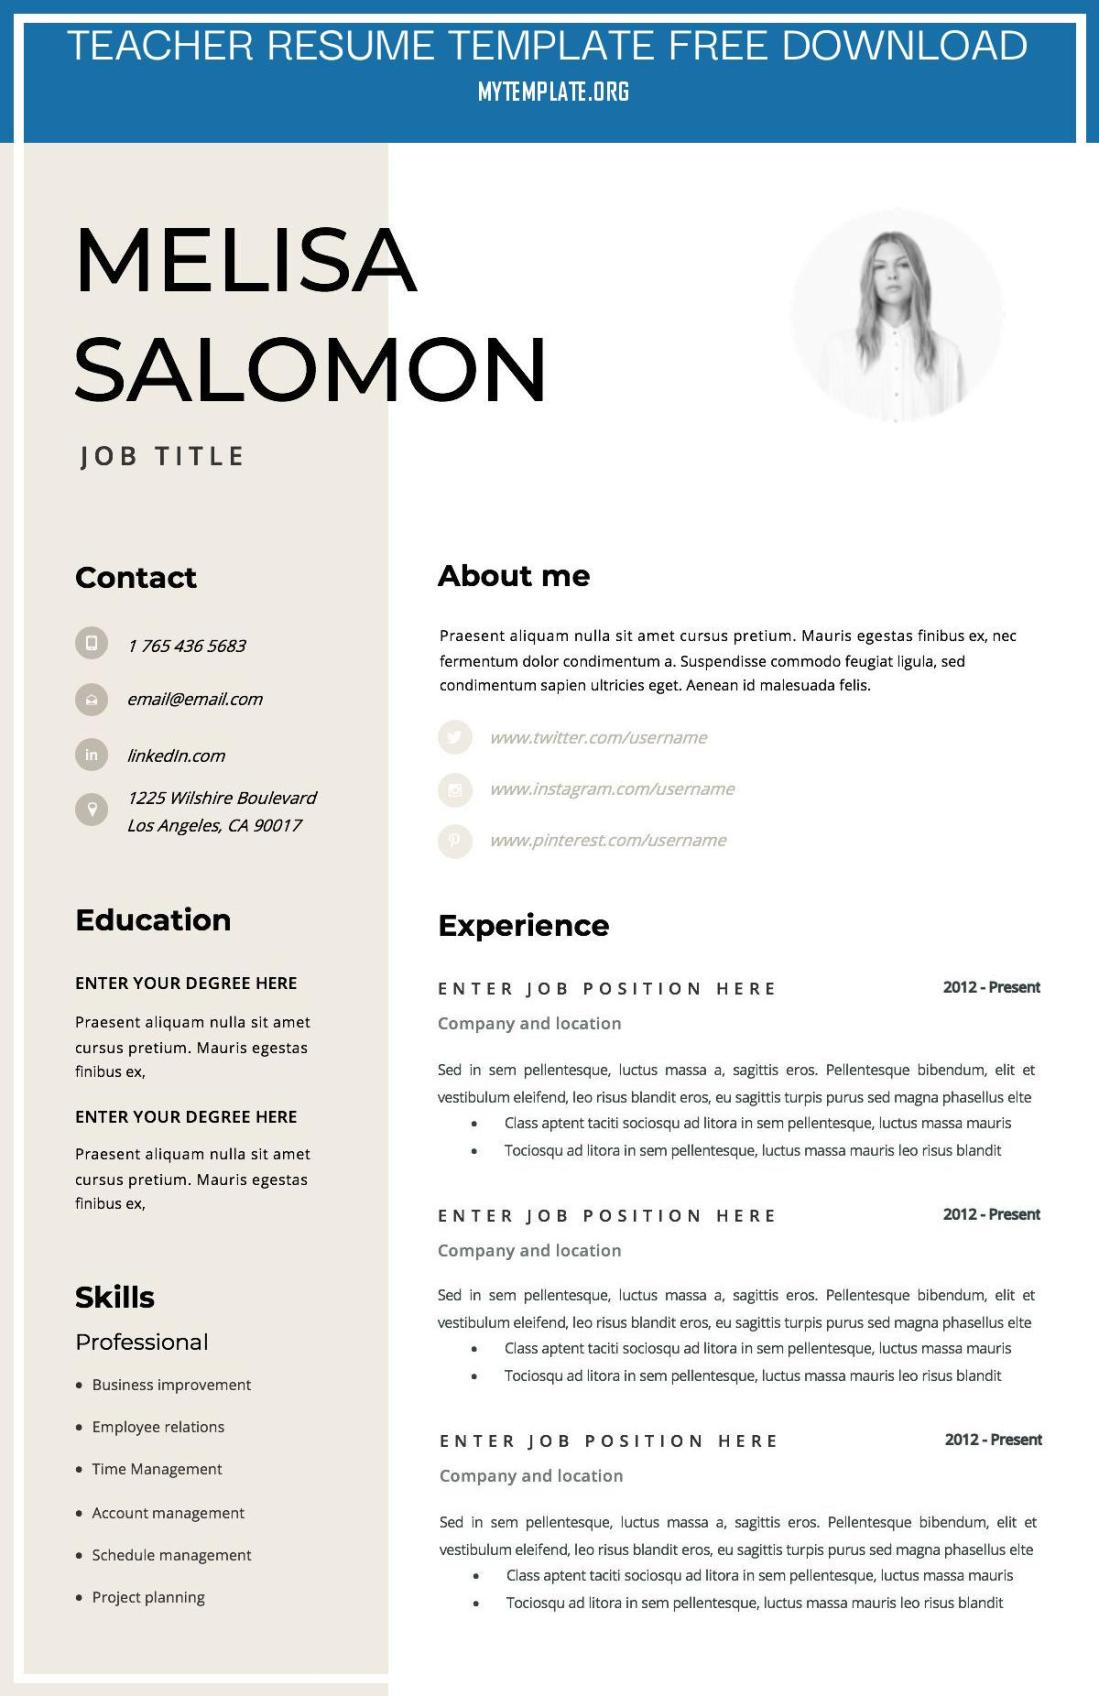 10 Teacher Resume Template Free Download Free Templates